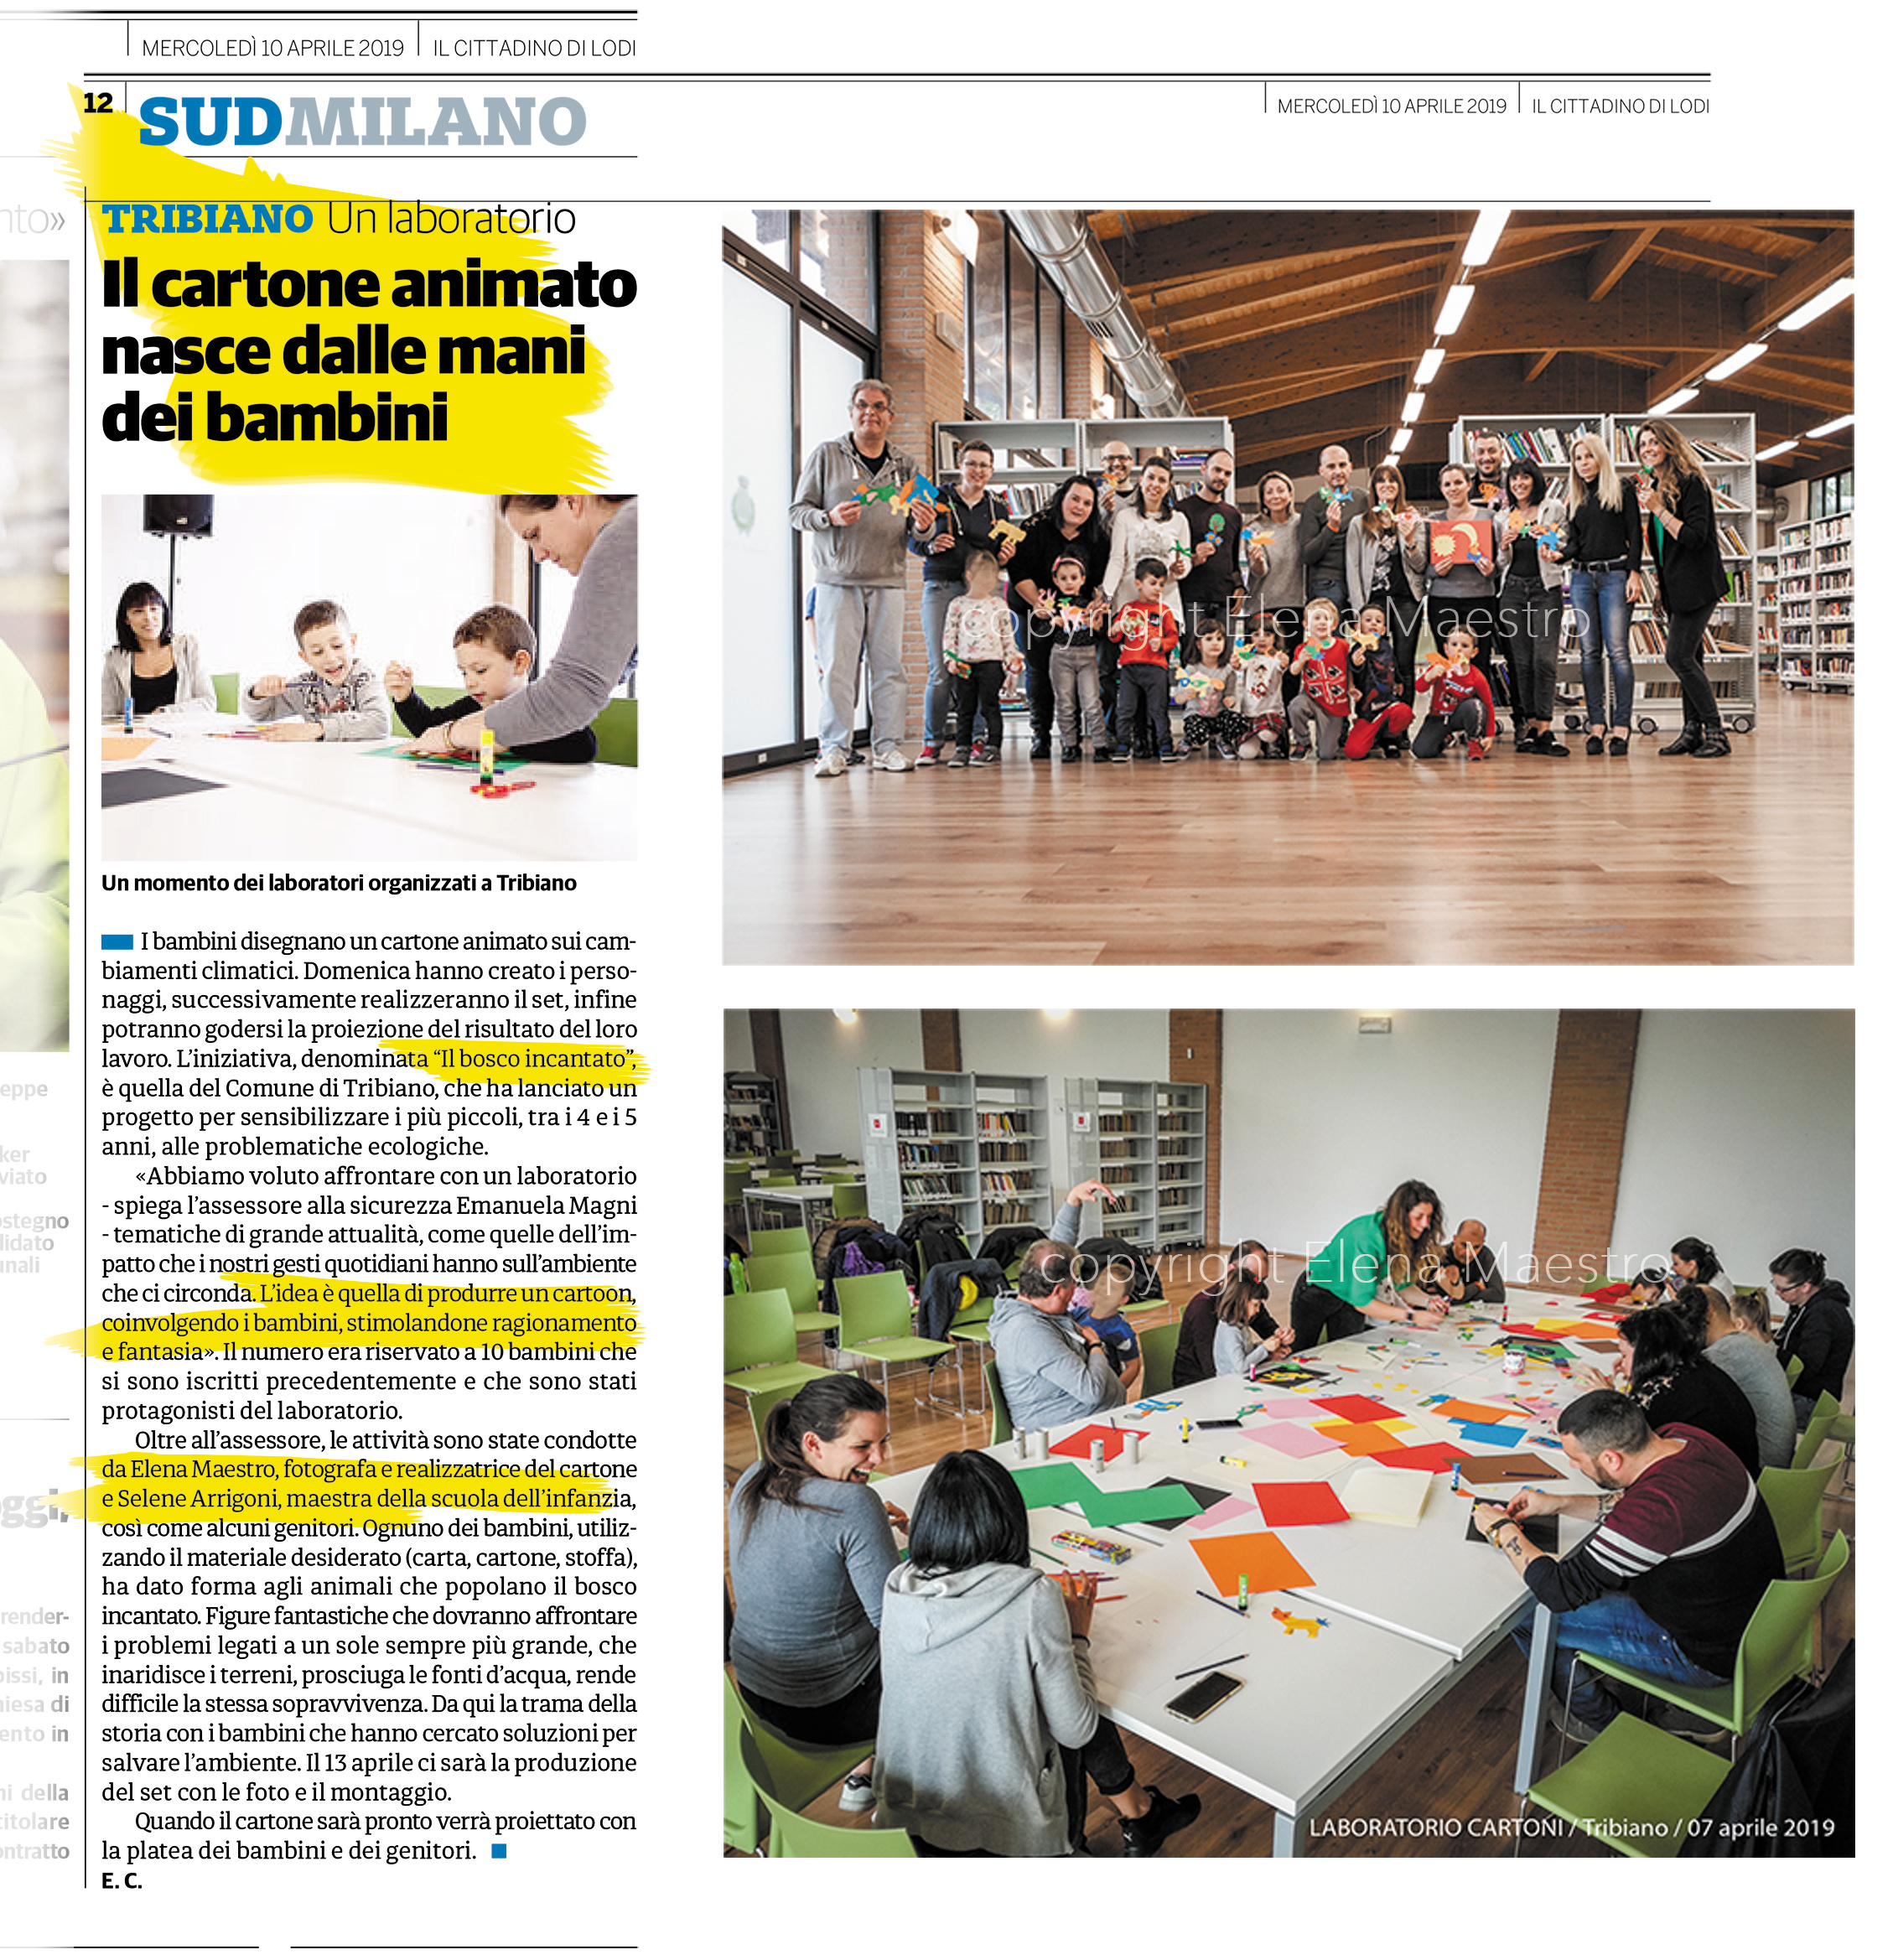 GIORNALE 12